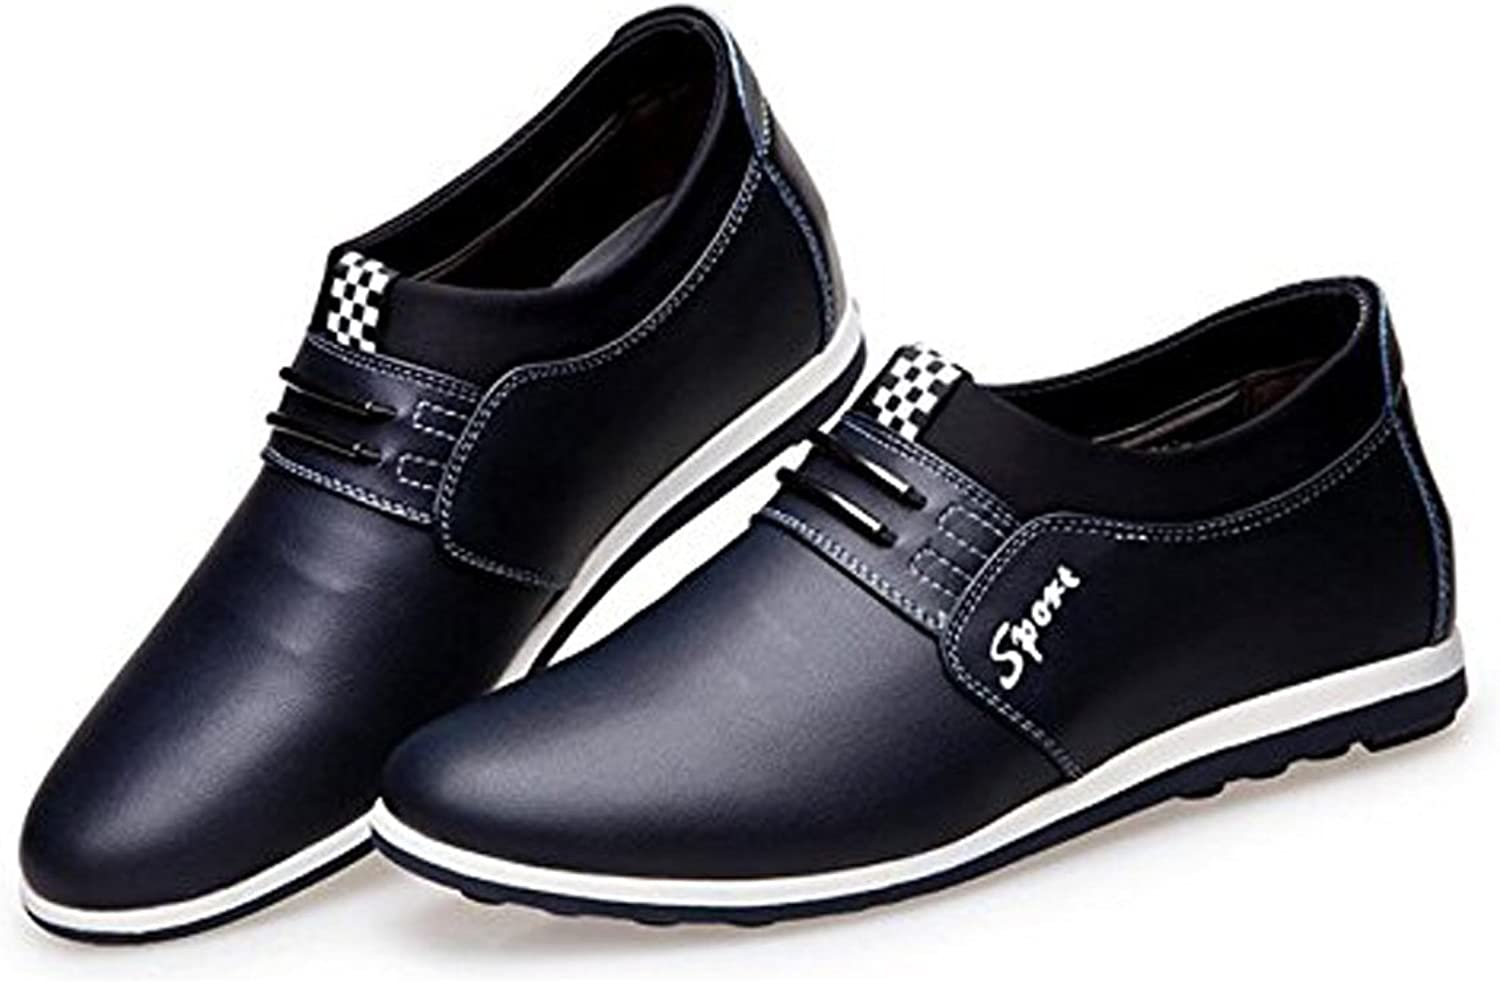 LQV New Men's Casual shoes England Youth Non-Slip Breathable shoes Trend Classic Comfortable and Breathable